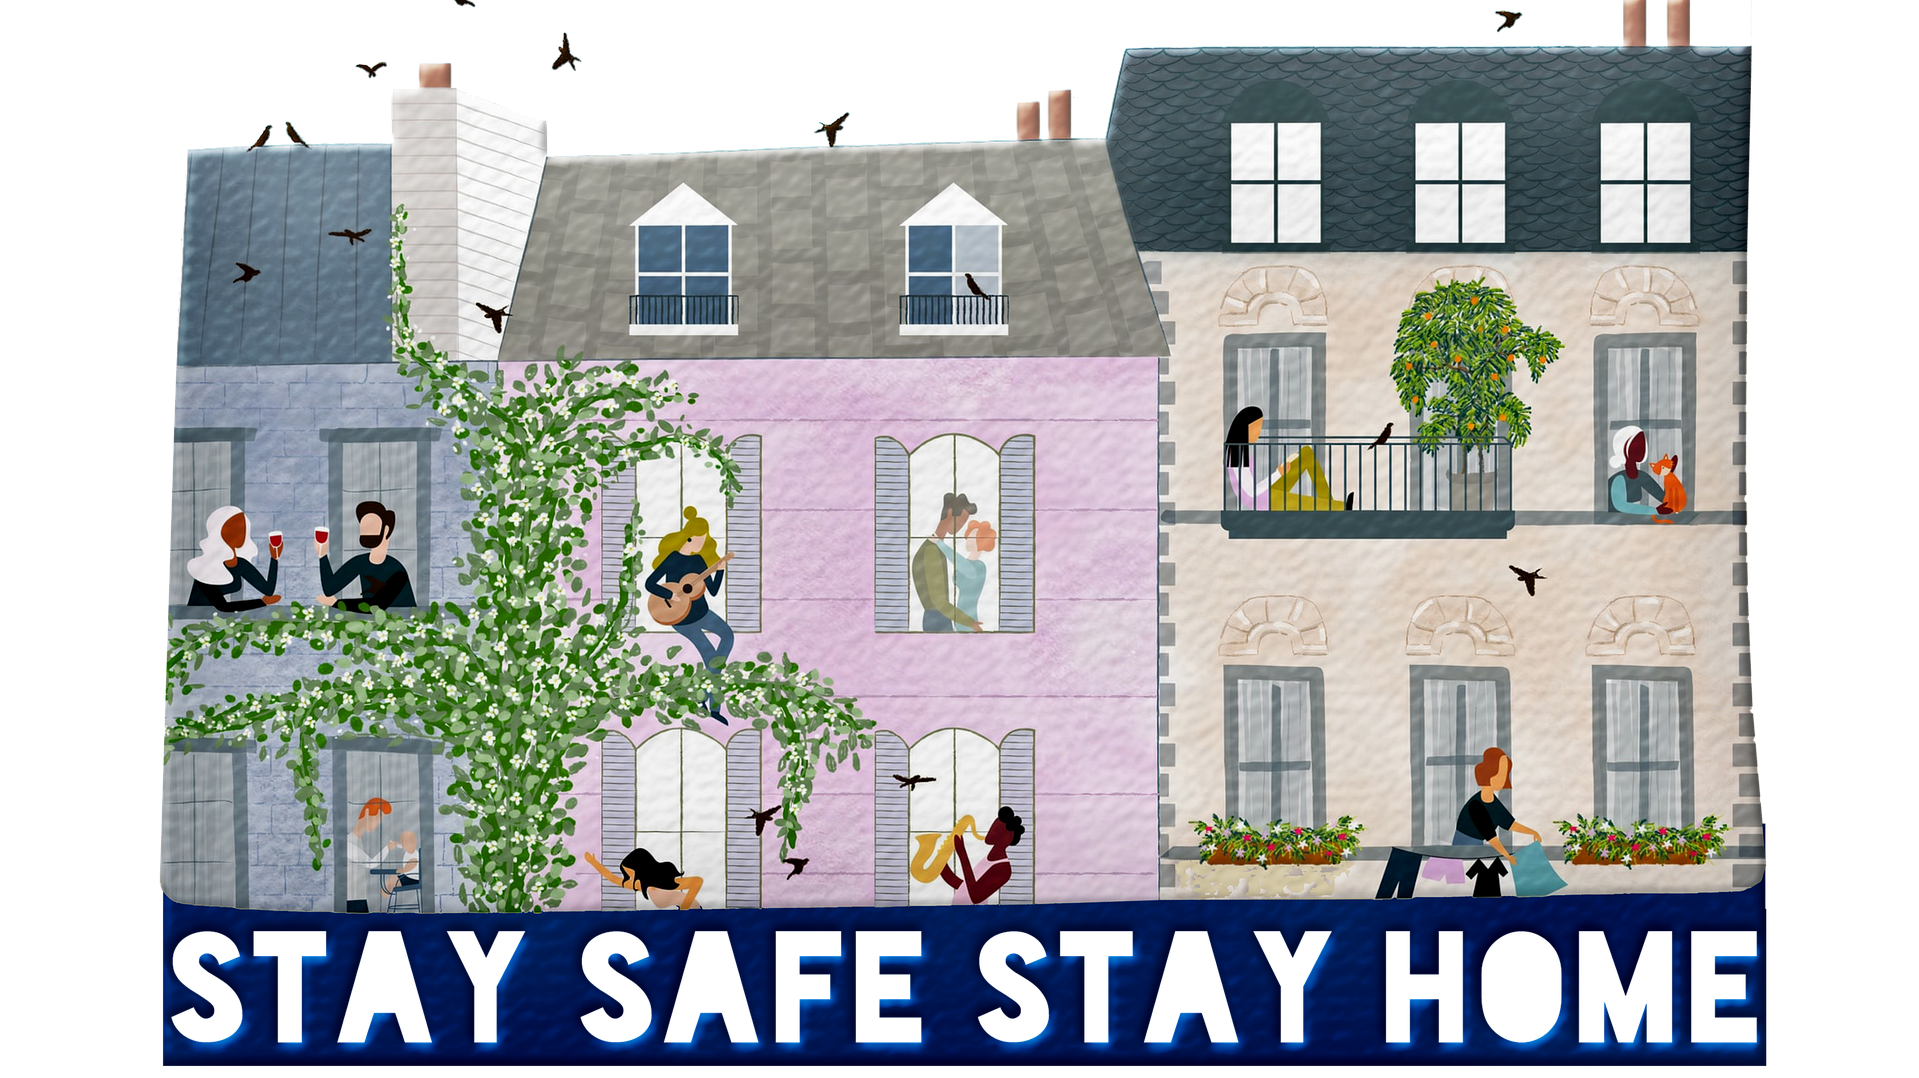 Stay home stay safe 5166519 1920